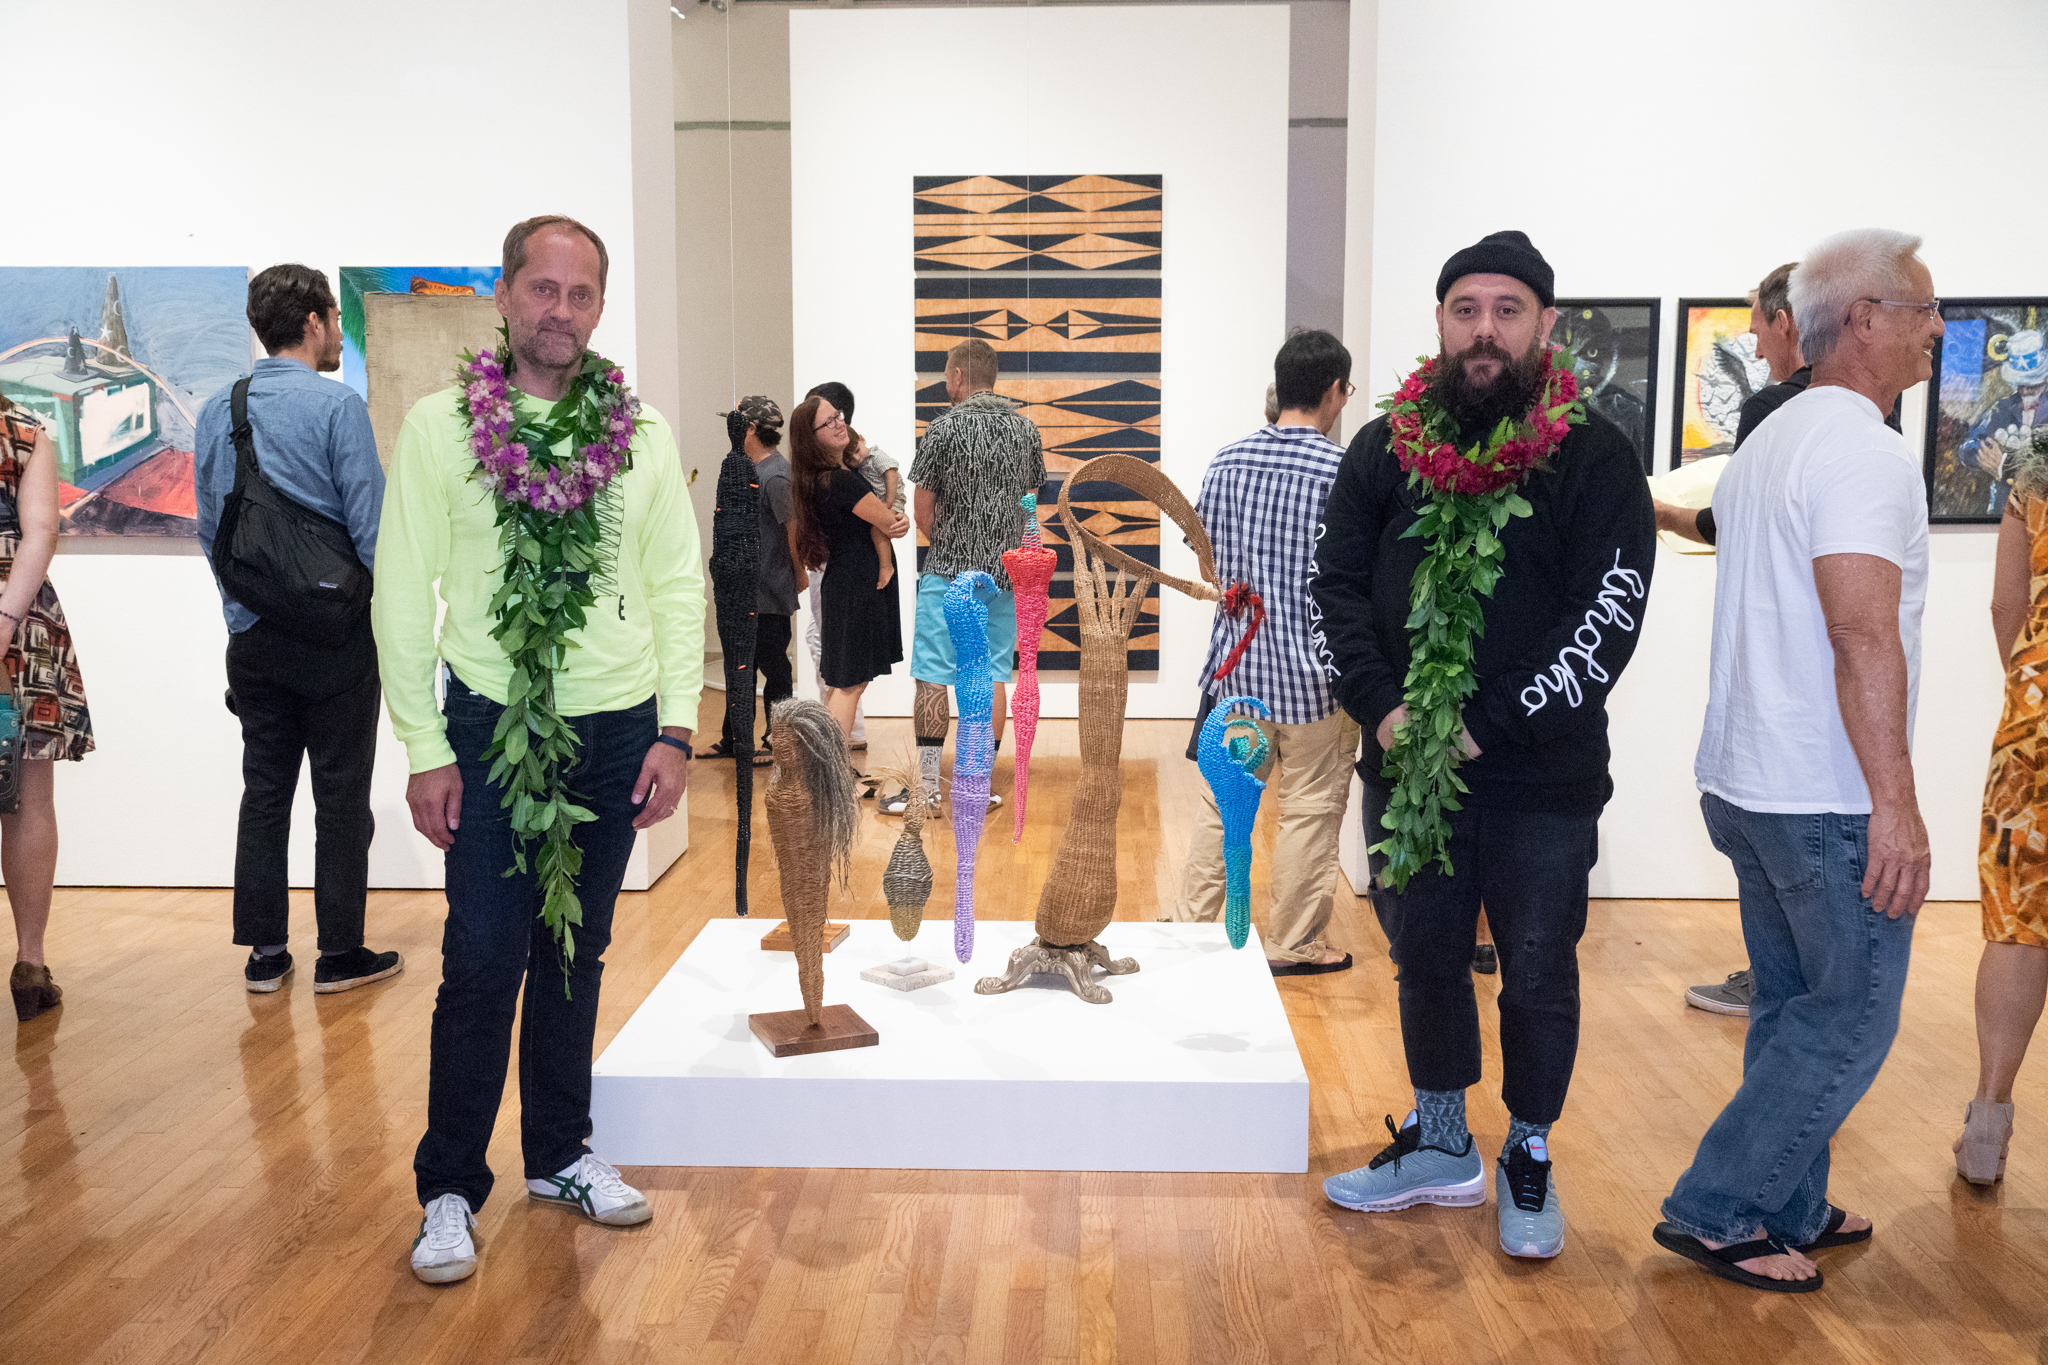 Installation view of THE CONTACT ZONE. (2018) with curators Michael Rooks and Keola Naka'ahiki Rapozo